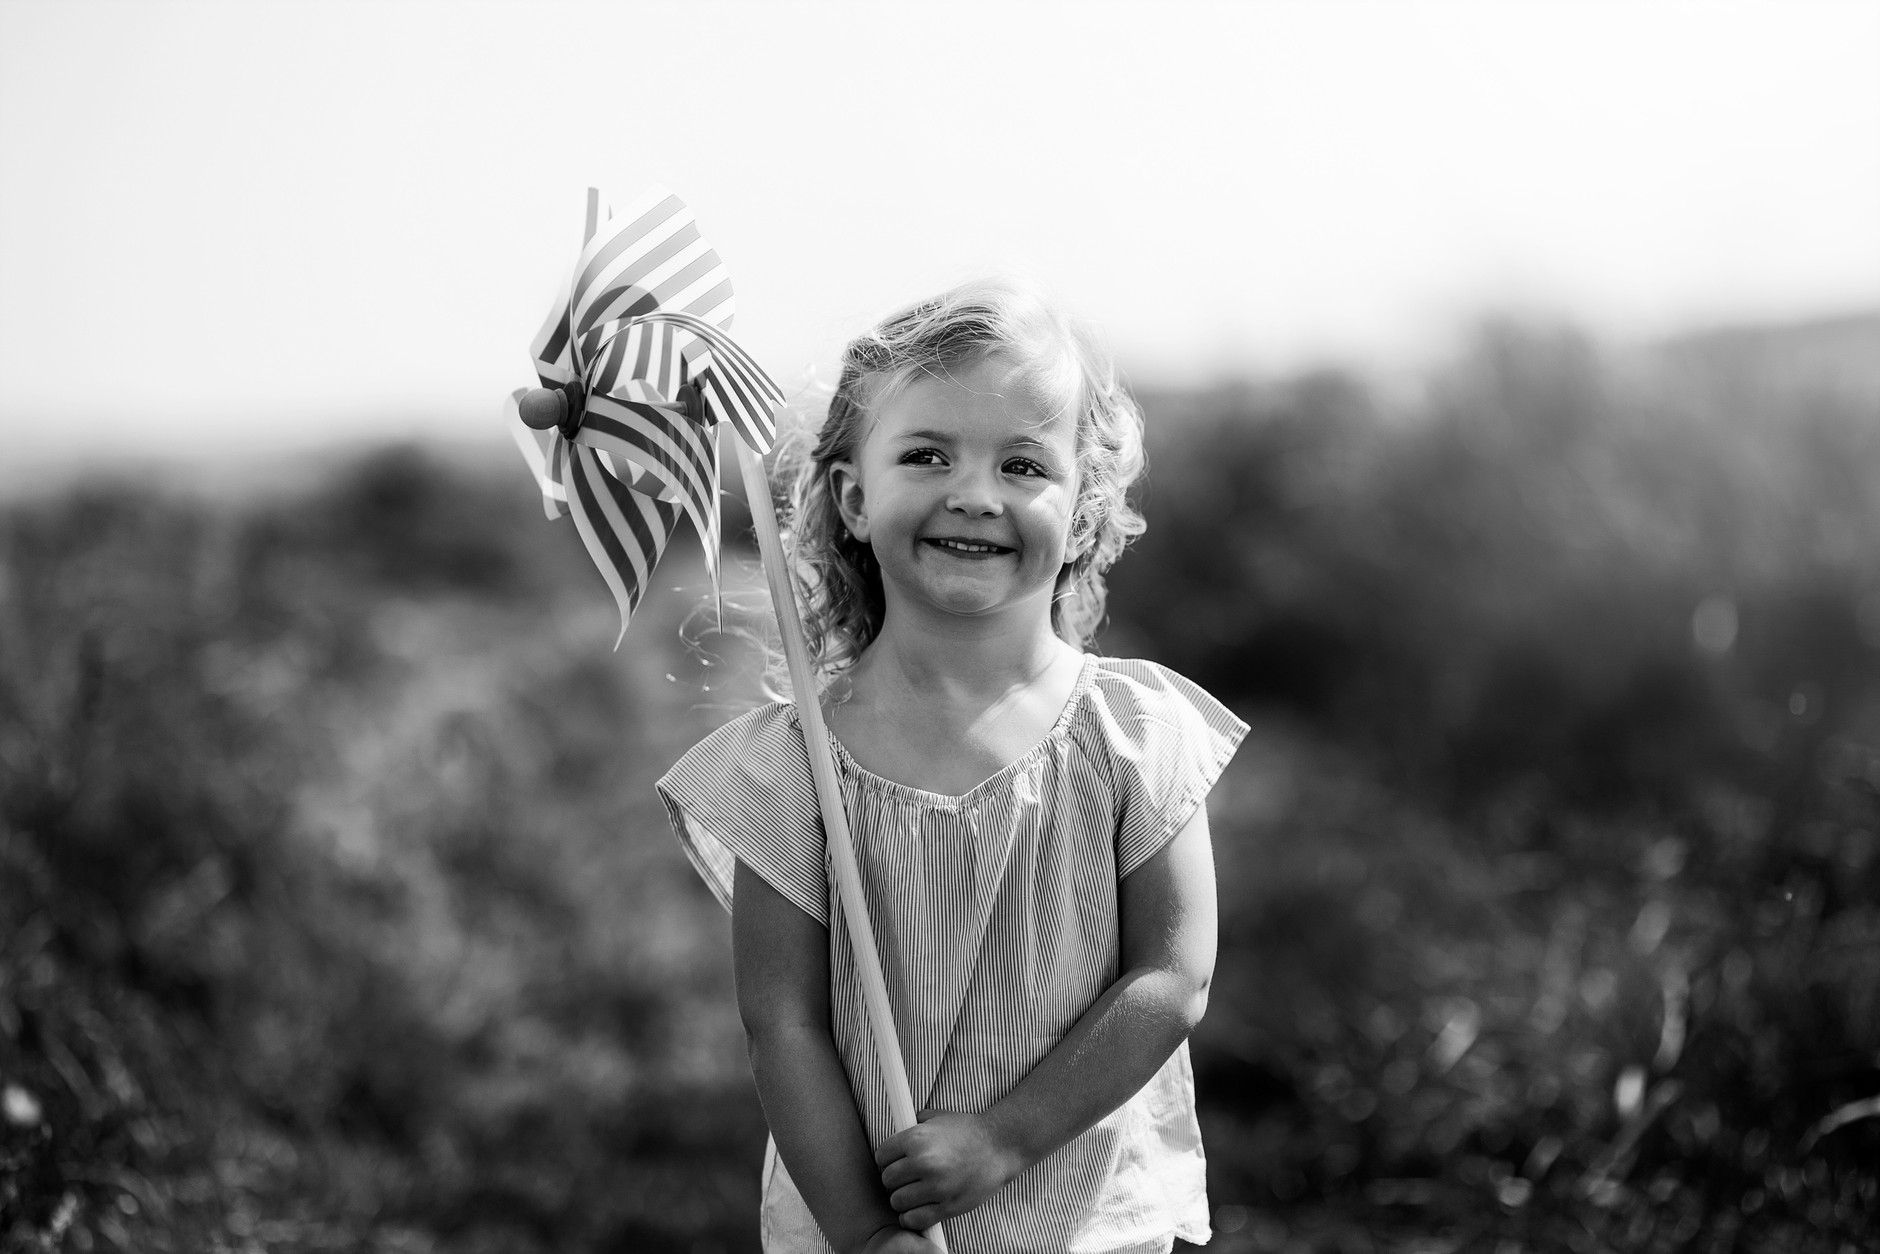 Little girl smiling and holding a wind mill in the sand dunes